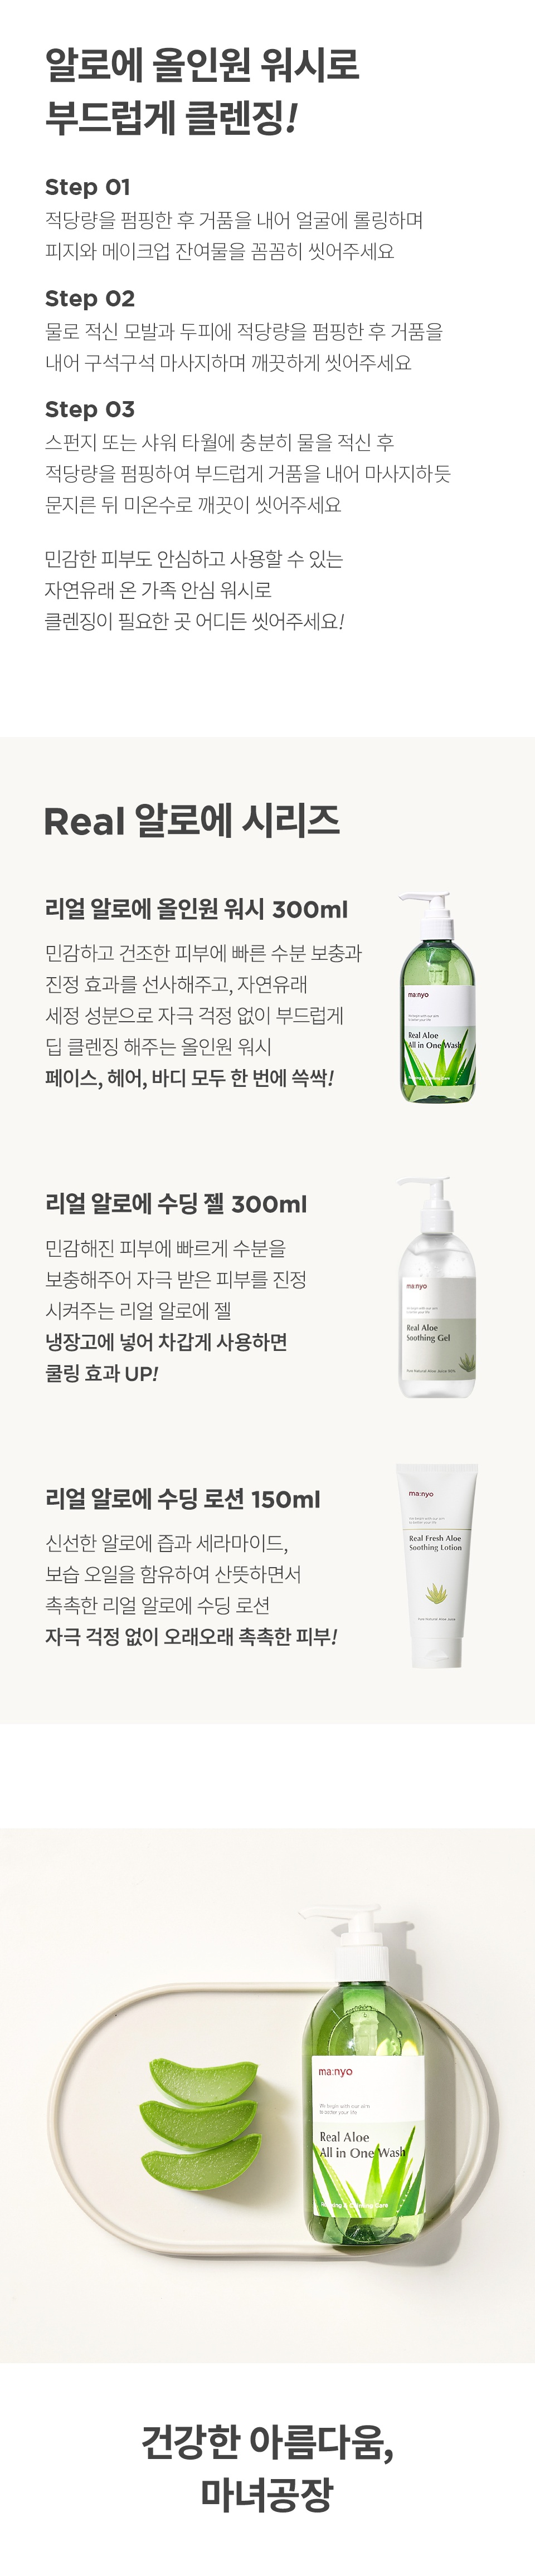 Manyo Factory Real Aloe All In One Wash korean skincare product online shop malaysia China india2